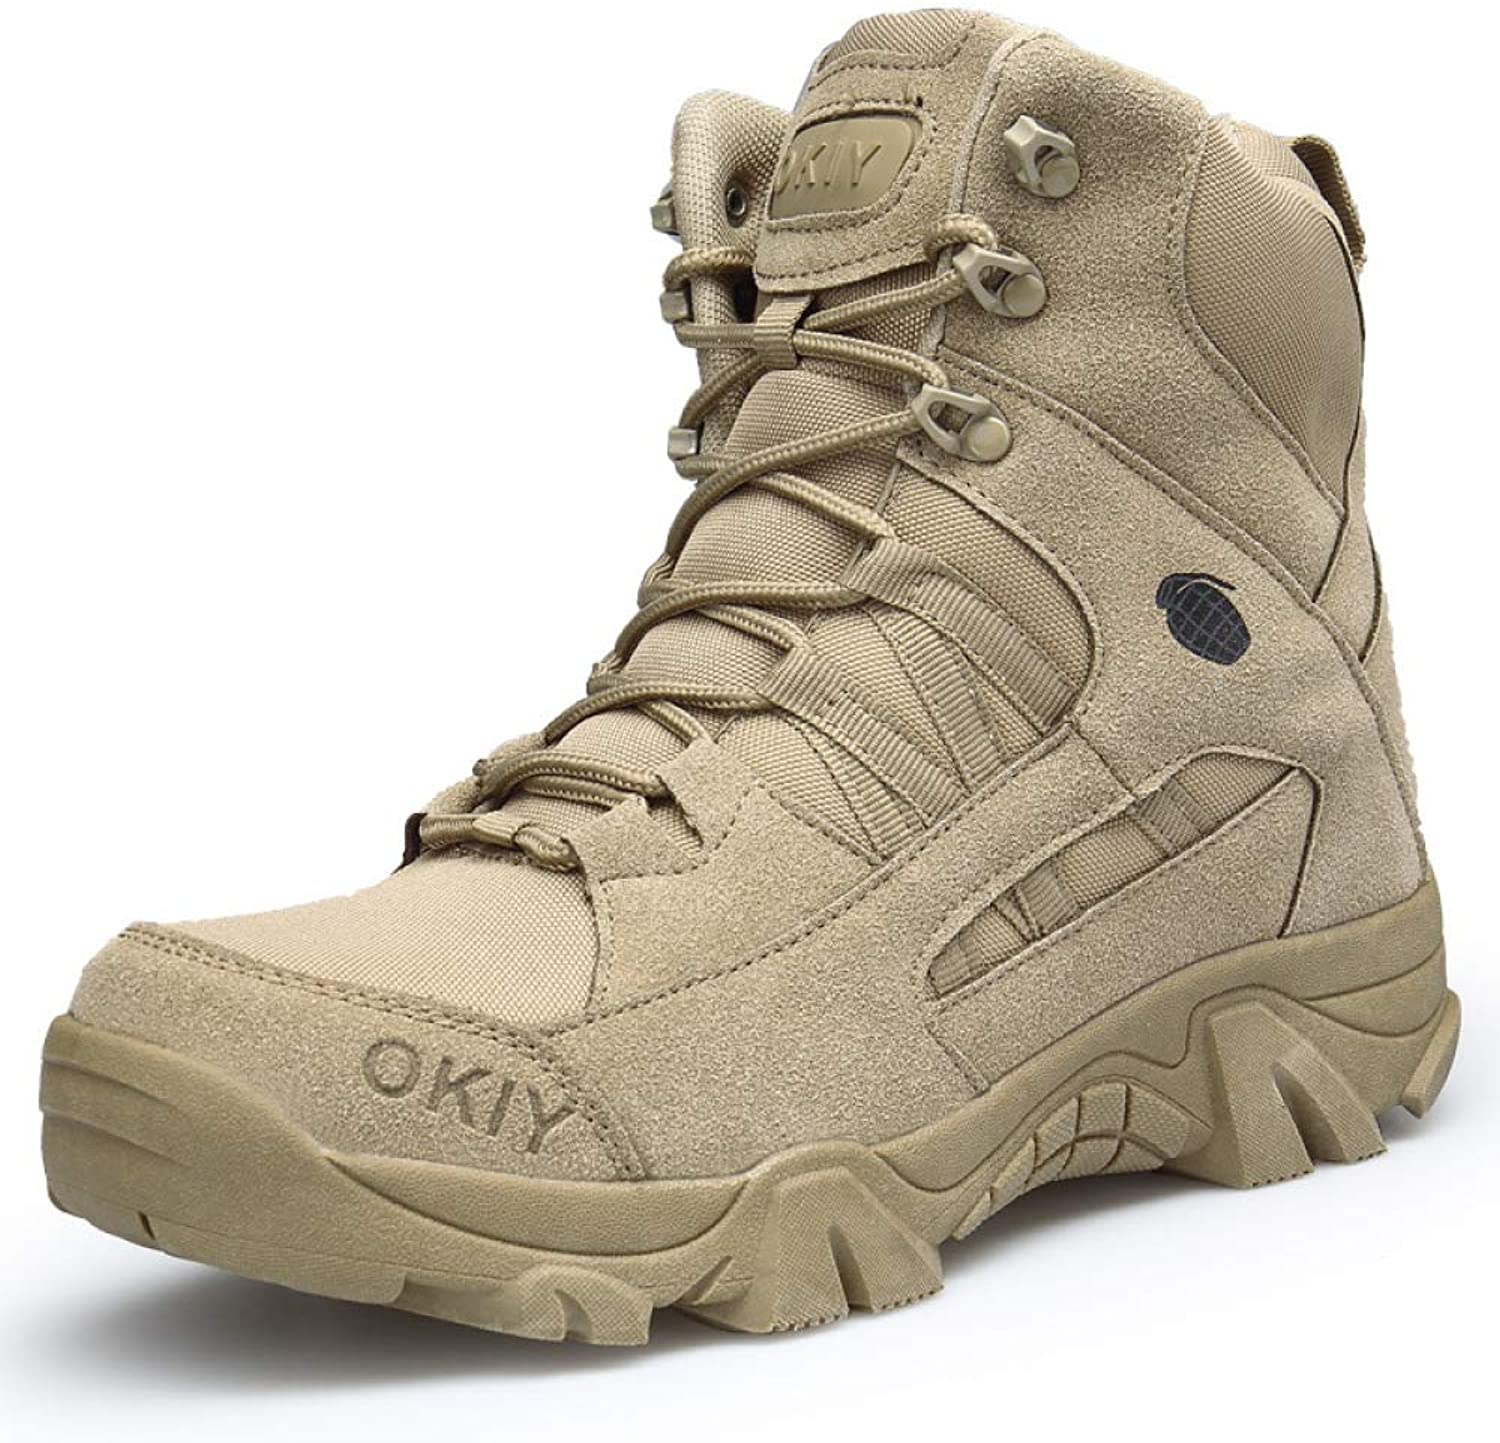 Mens Outdoor Military Army Police Combat Boots Desert Special Forces Armed Tactics shoes Mountaineering Lace-Up Footwear